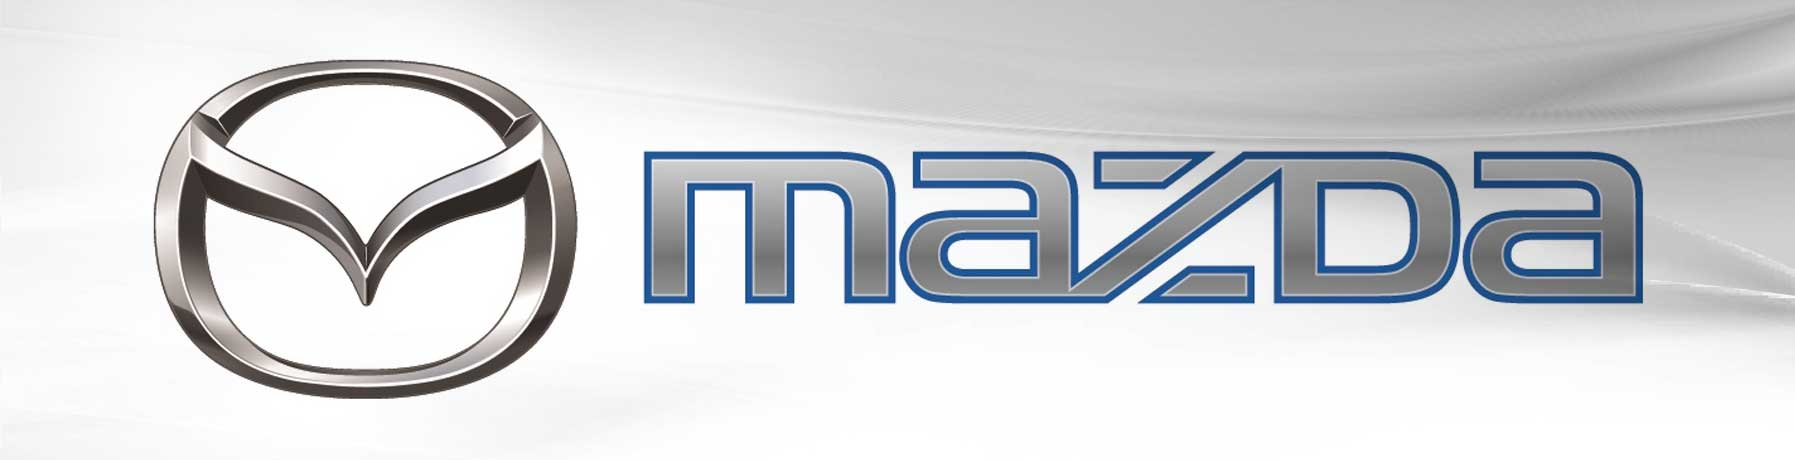 We service Mazda vehicles